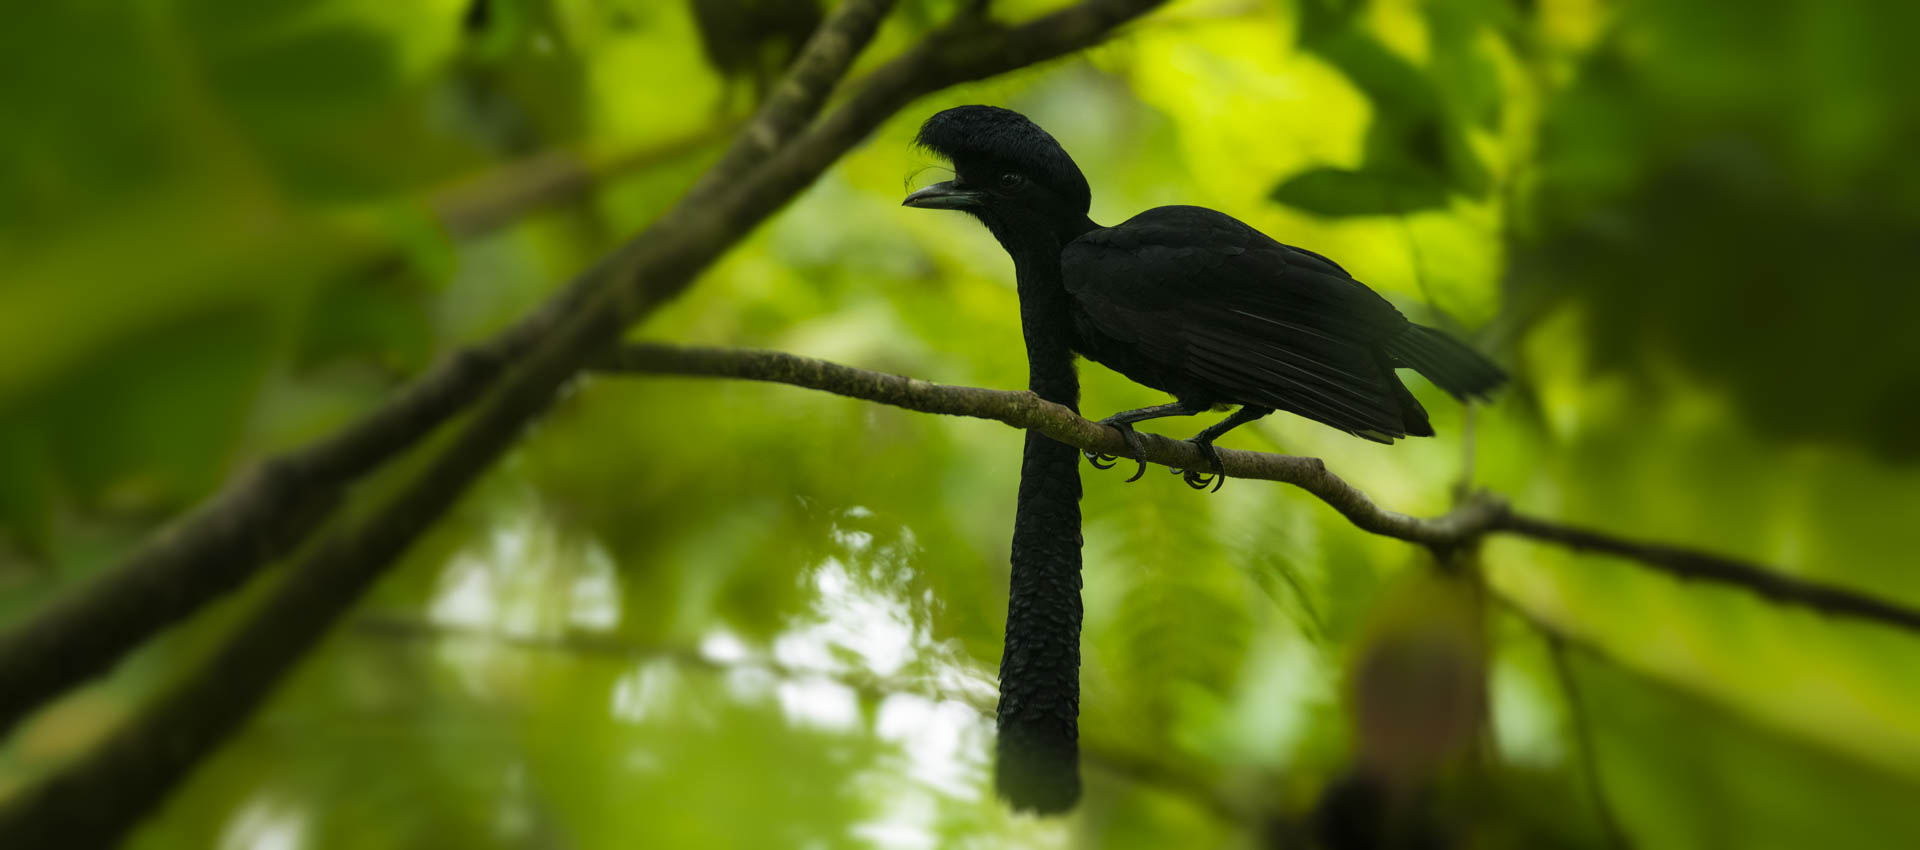 MCF Umbrella Bird